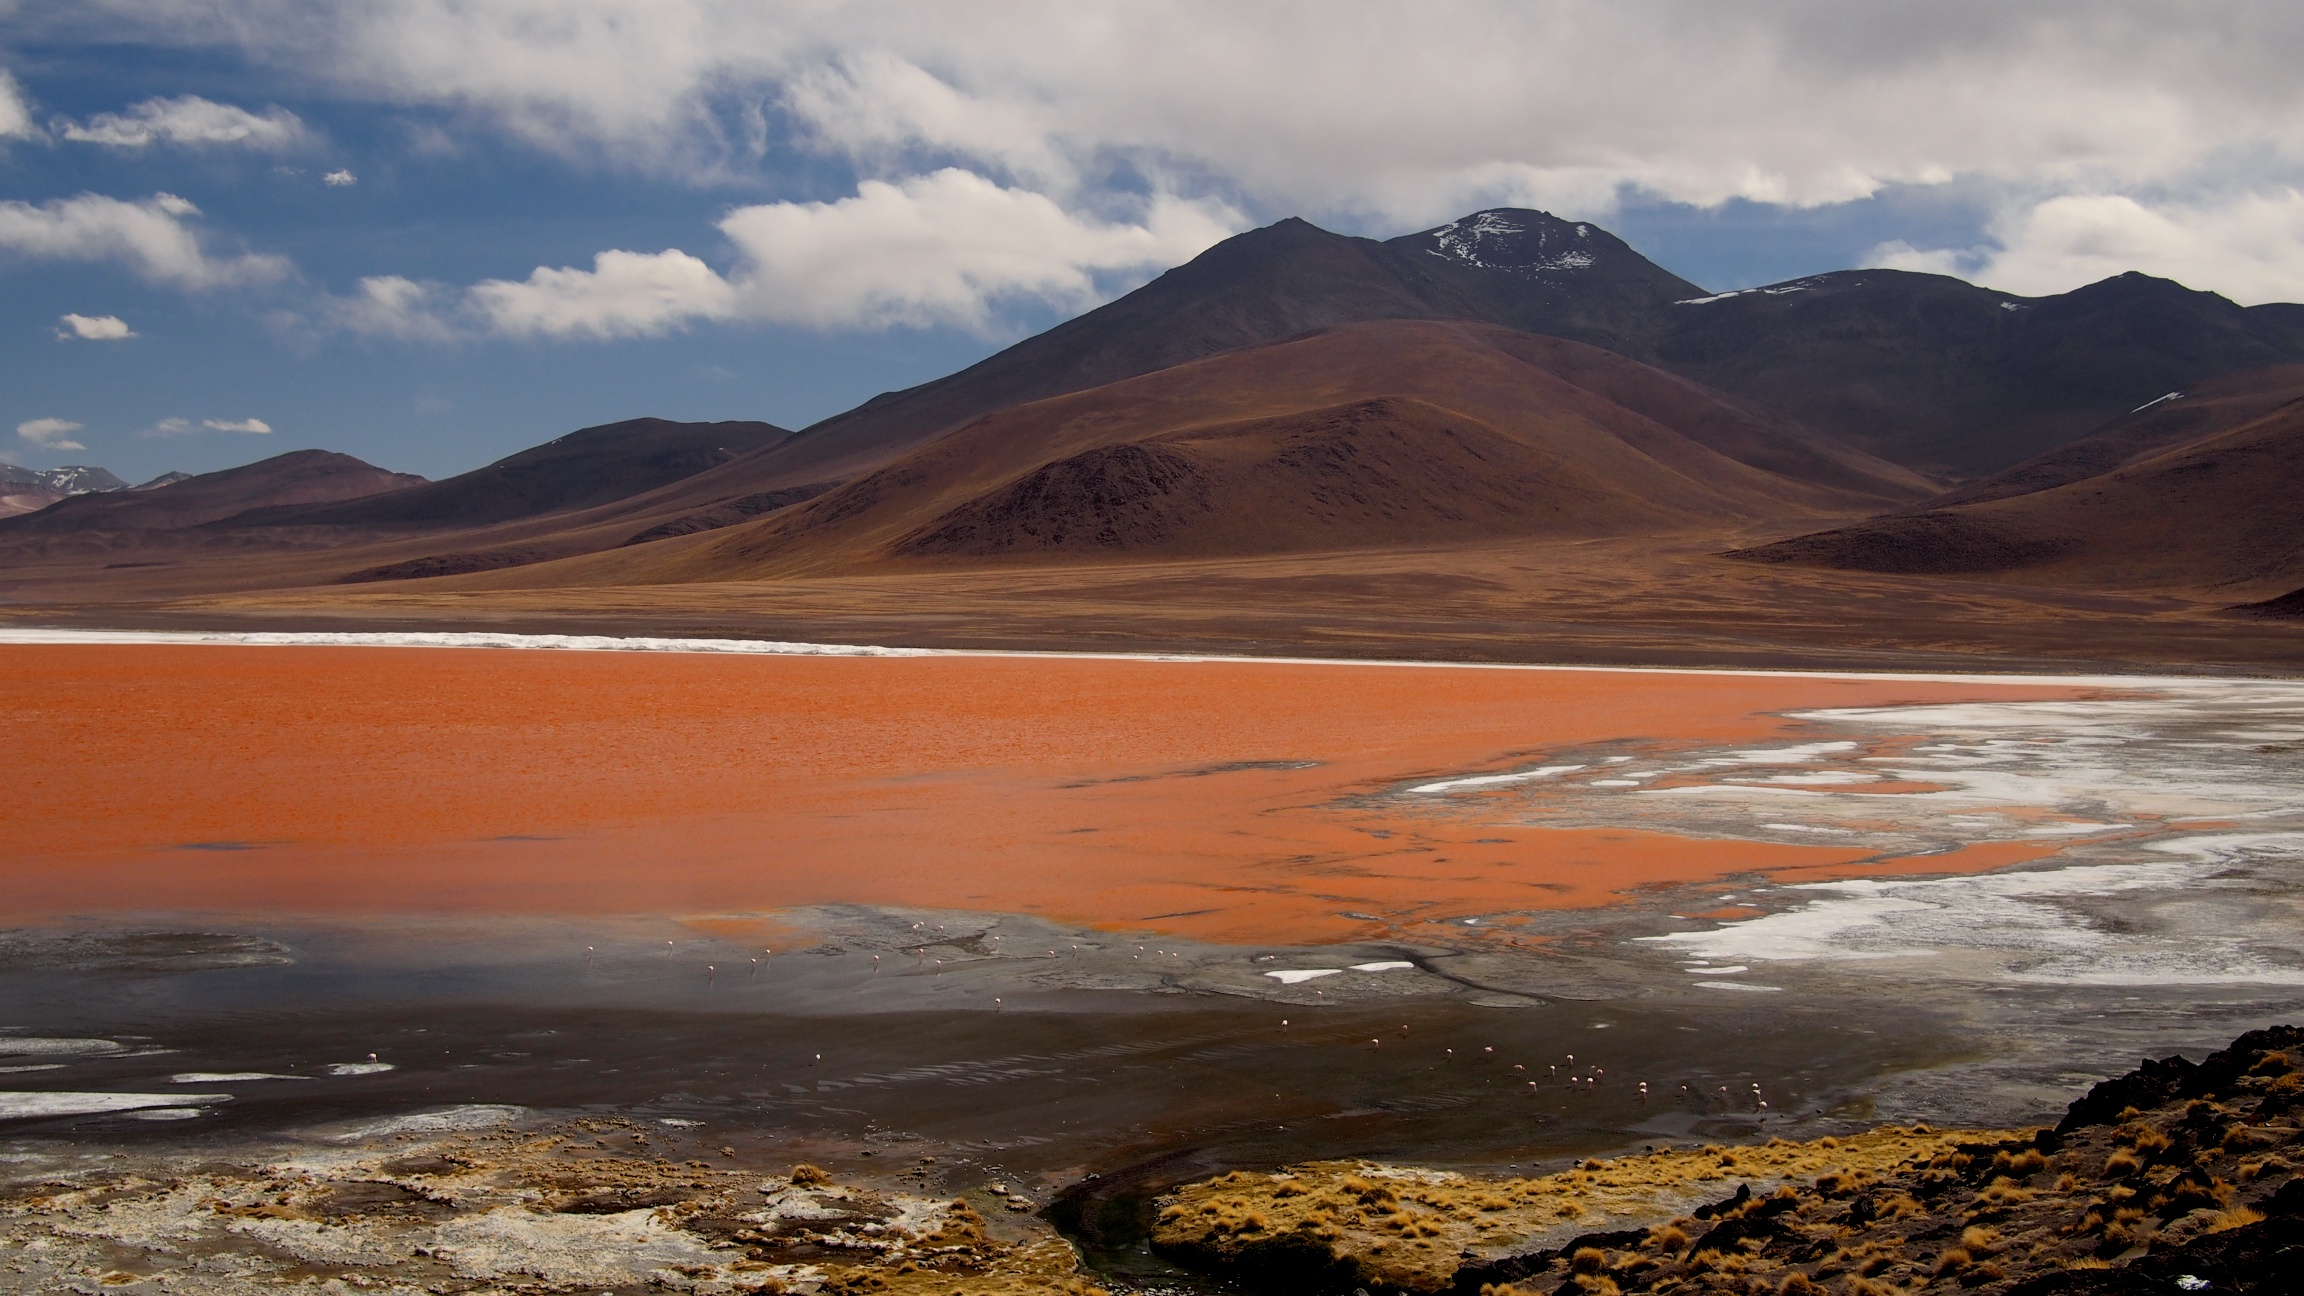 Laguna Colorada, a shallow lagoon with an average depth of 45 cm. The bright red color changes throughout the day due to the pigments of a microscopic algae species